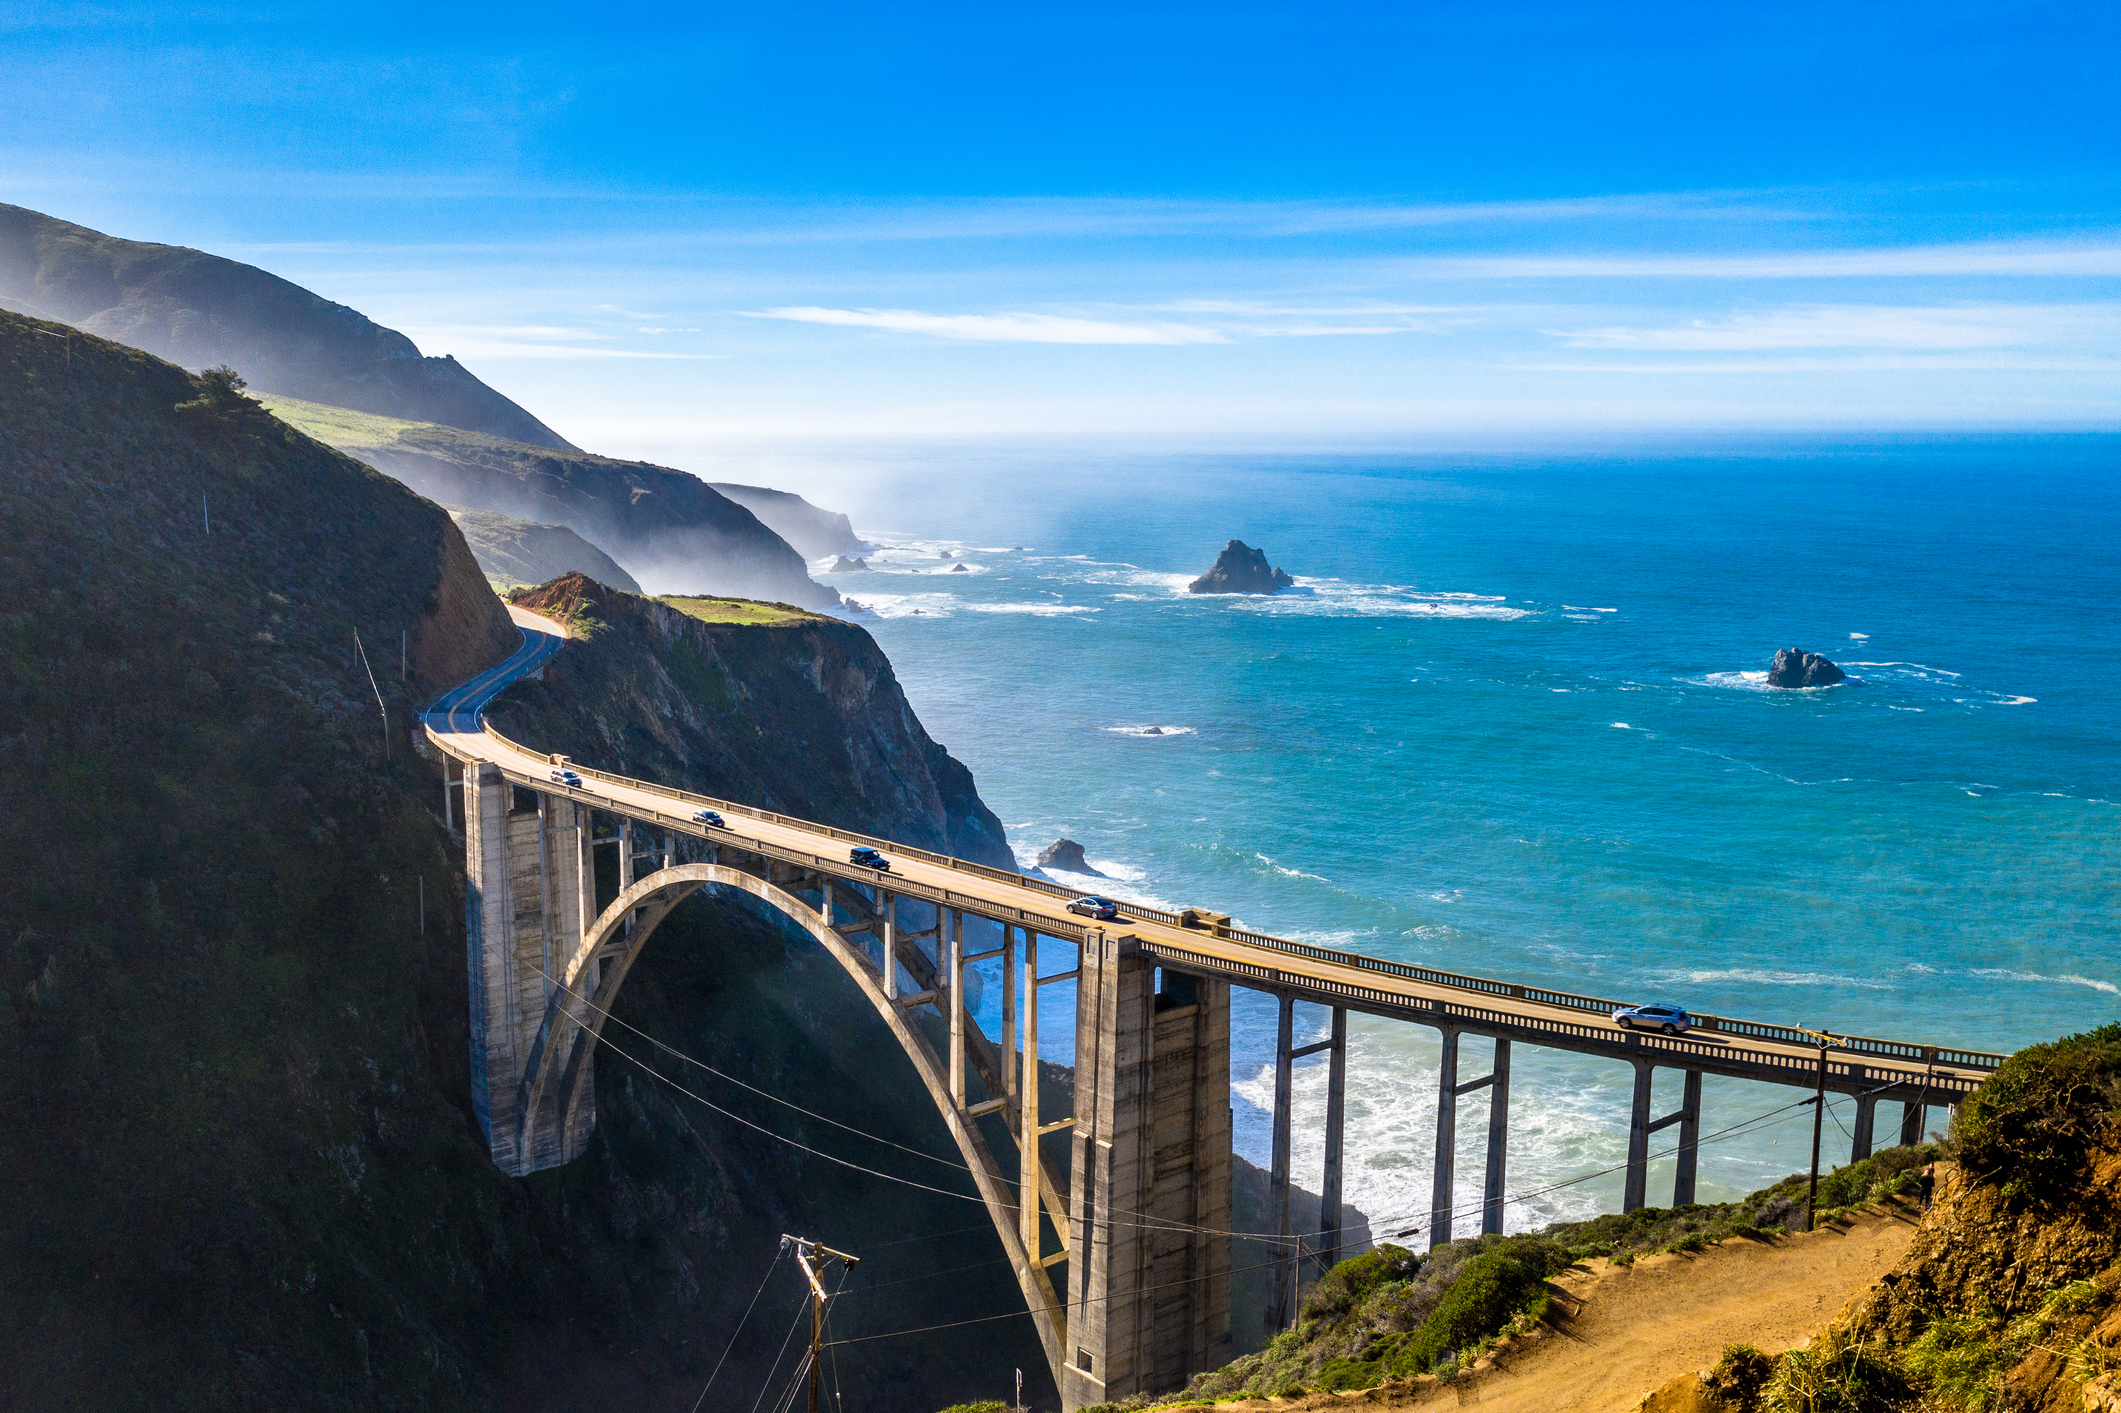 A bridge crosses a canyon with ocean in backgroud.